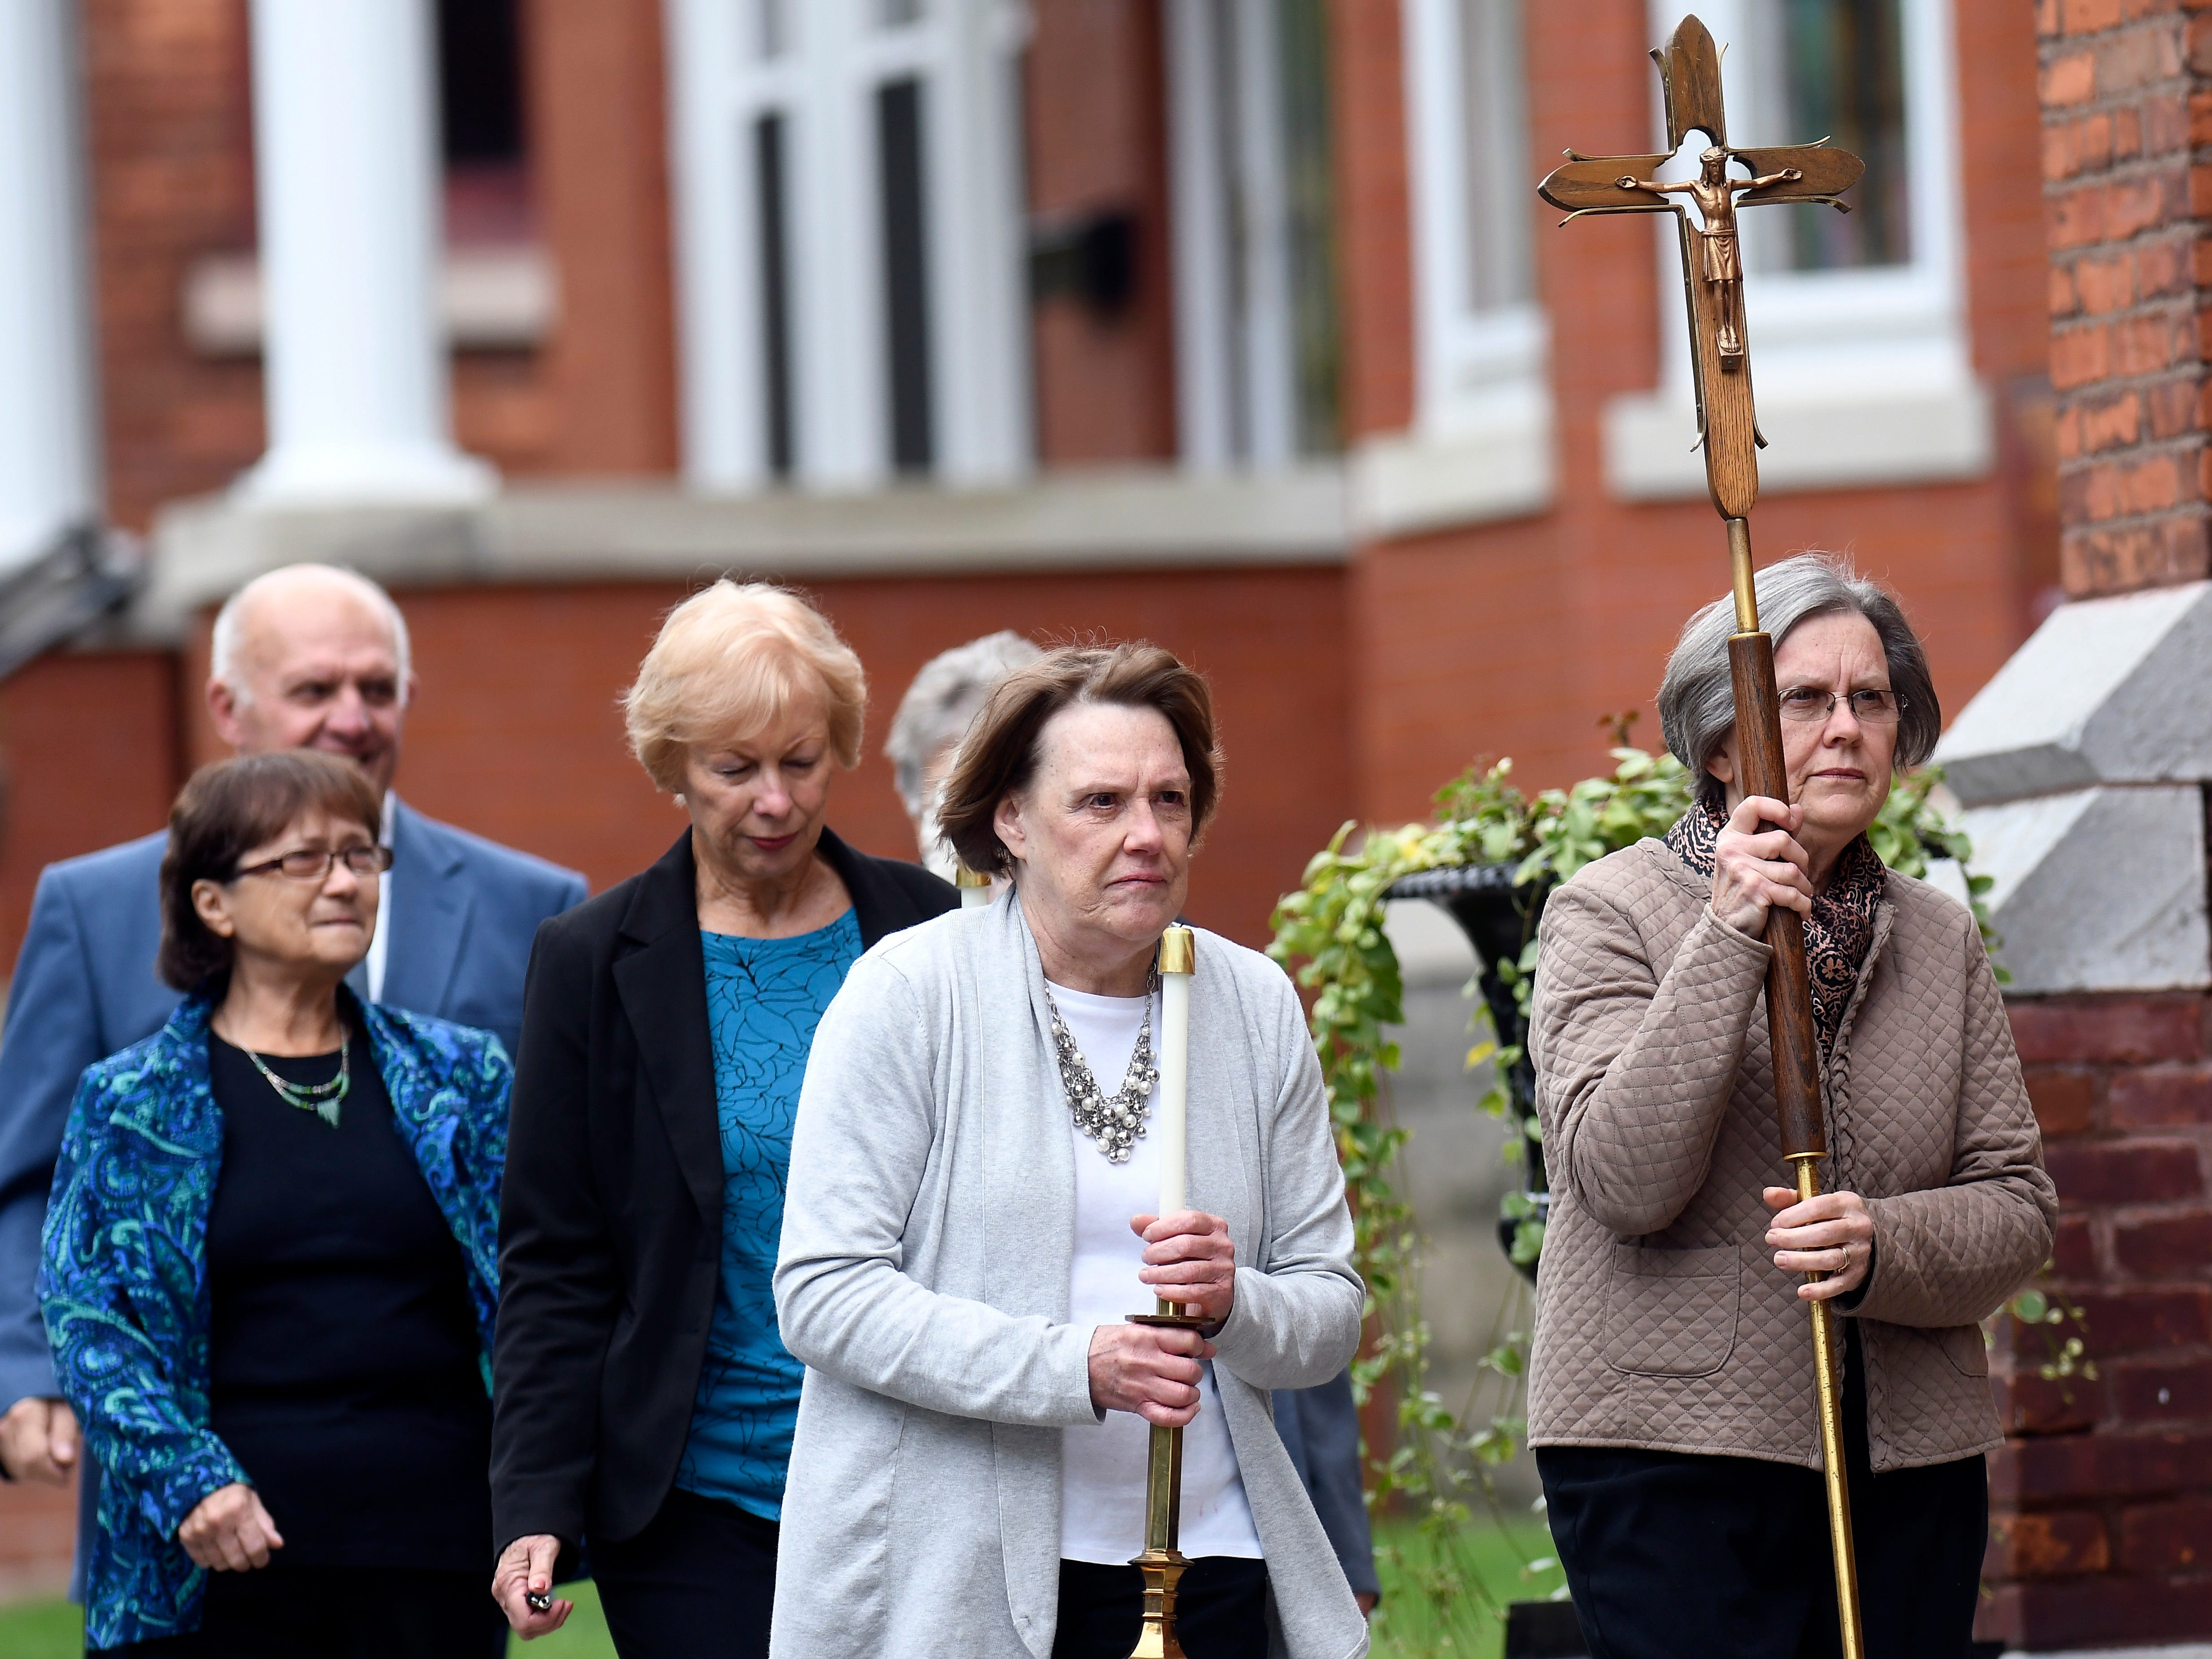 Friends and family arrive before the start of a funeral Mass for eight of the 20 people killed in last Saturday's fatal limousine crash in Schoharie, N.Y., during a memorial service at St. Stanislaus Roman Catholic Church in Amsterdam, N.Y., Saturday, Oct. 13, 2018. (AP Photo/Hans Pennink)